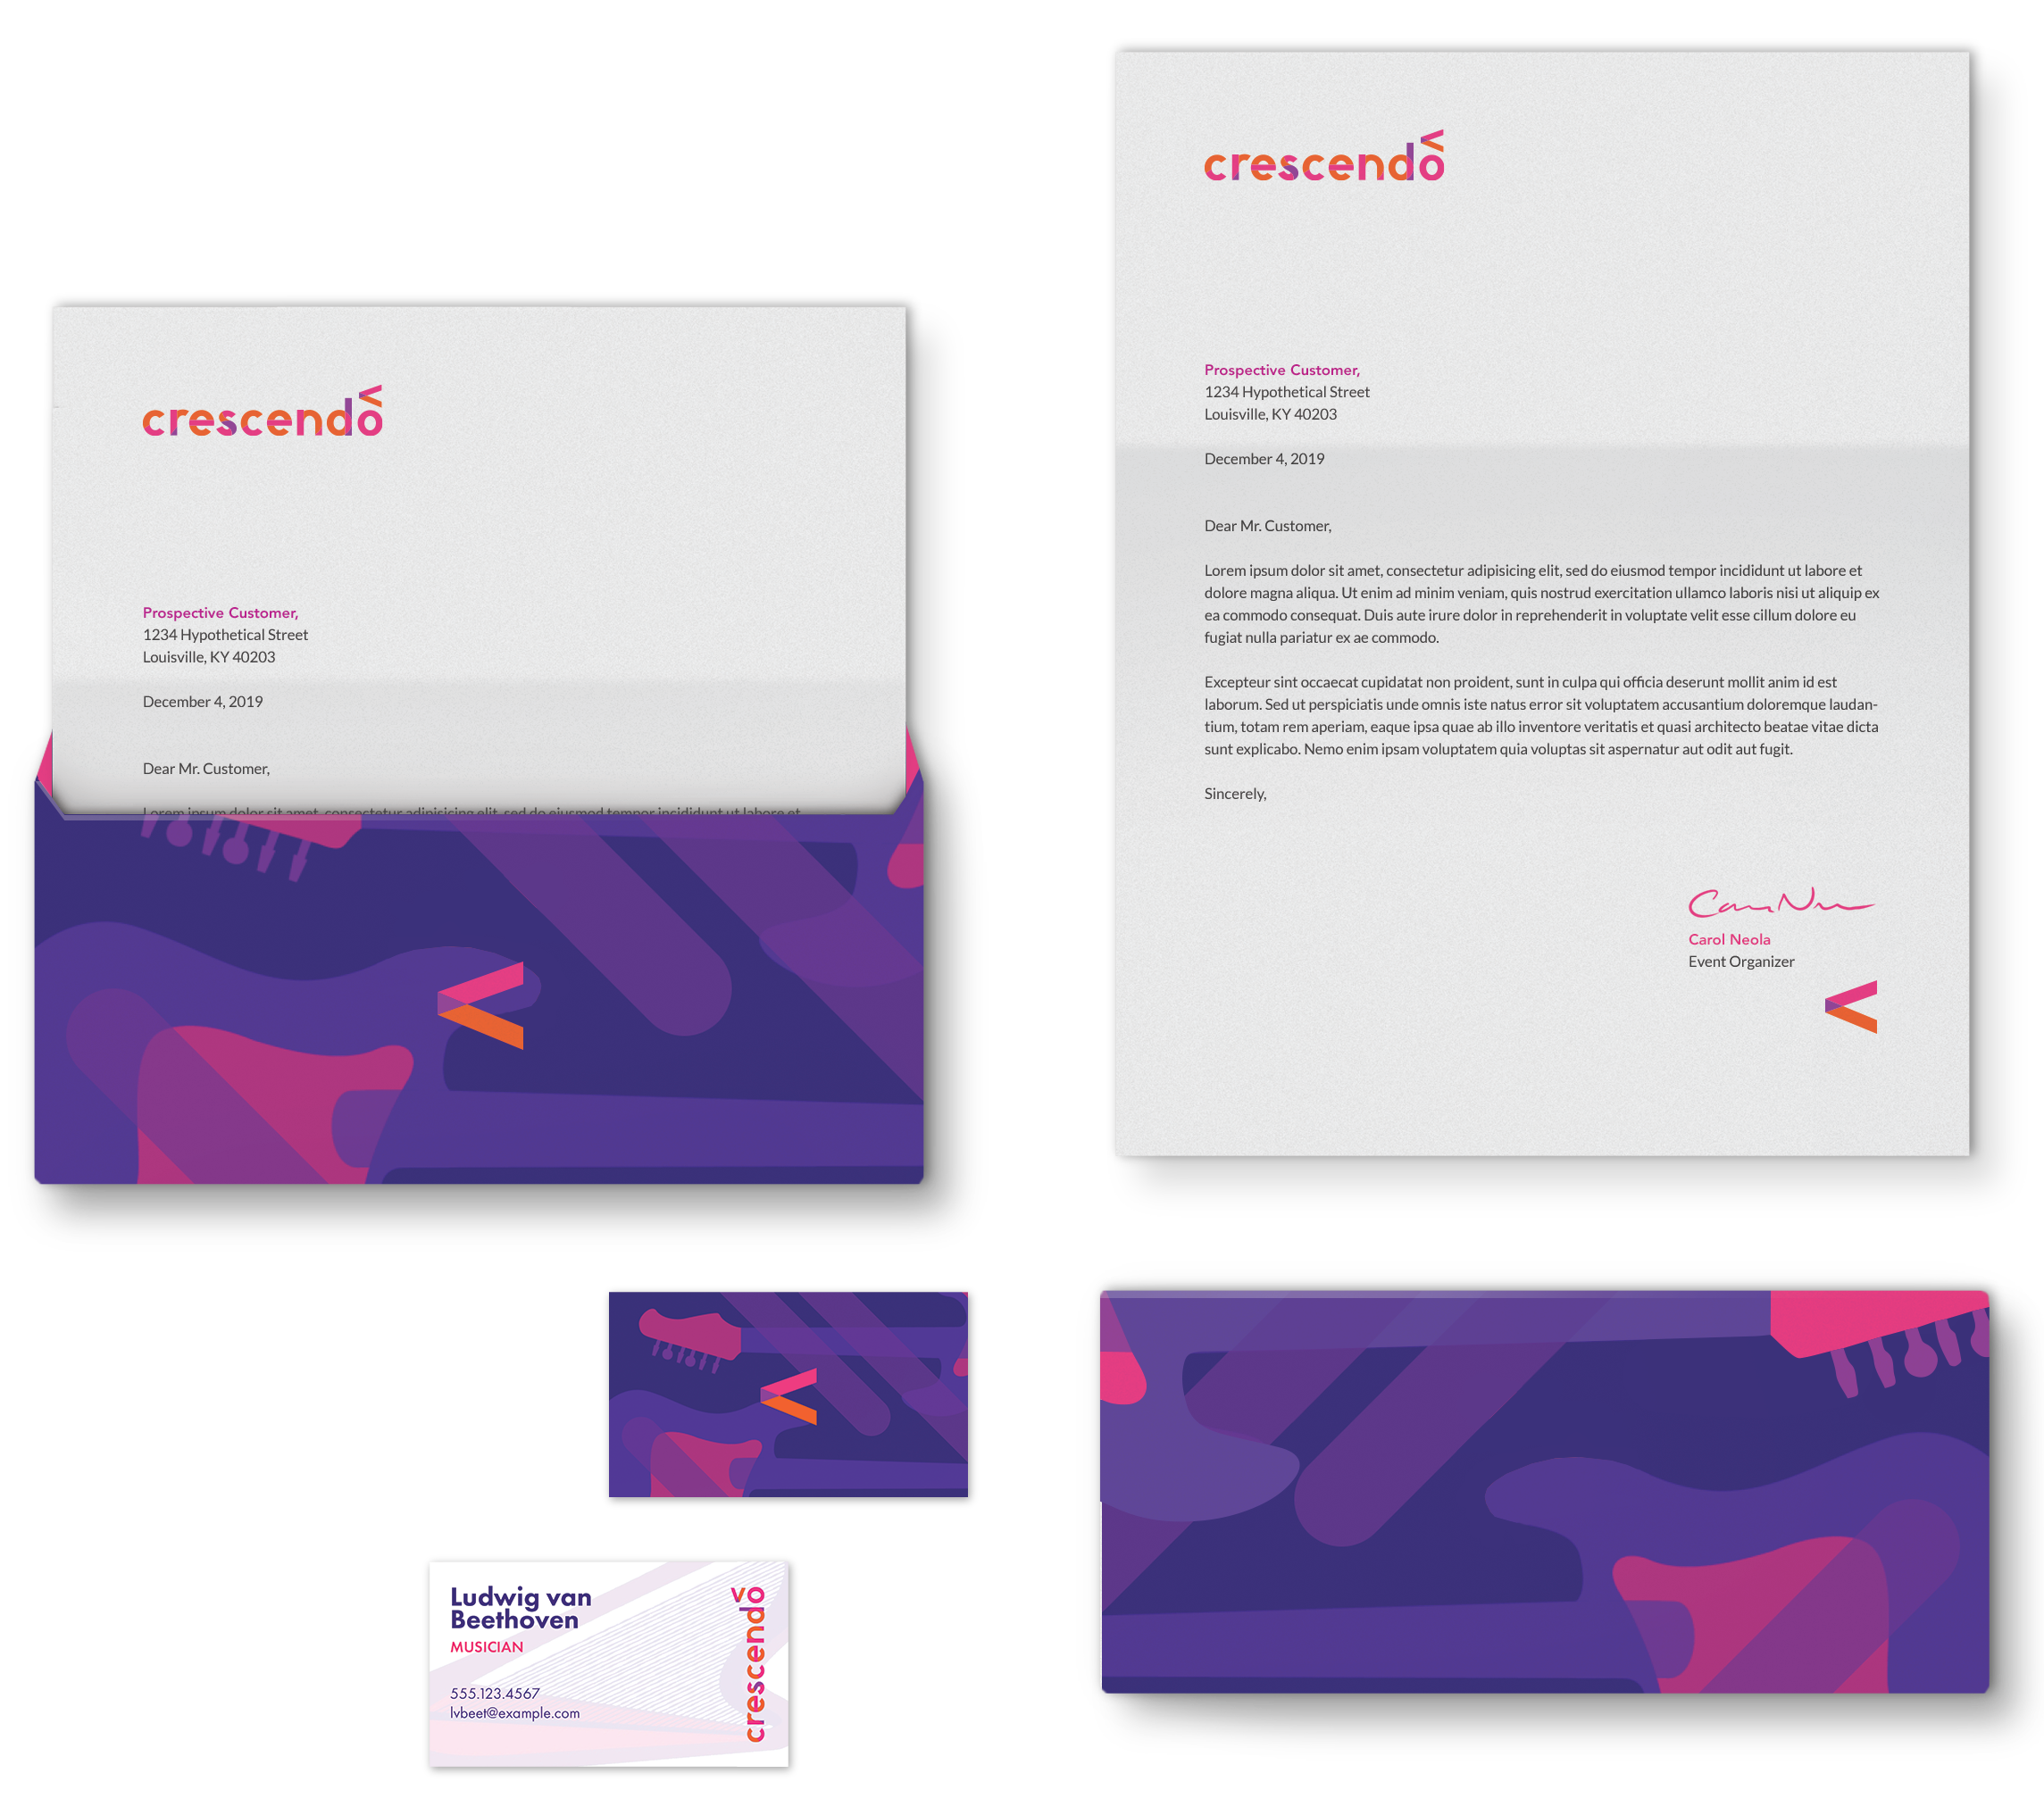 crescendo stationery designs